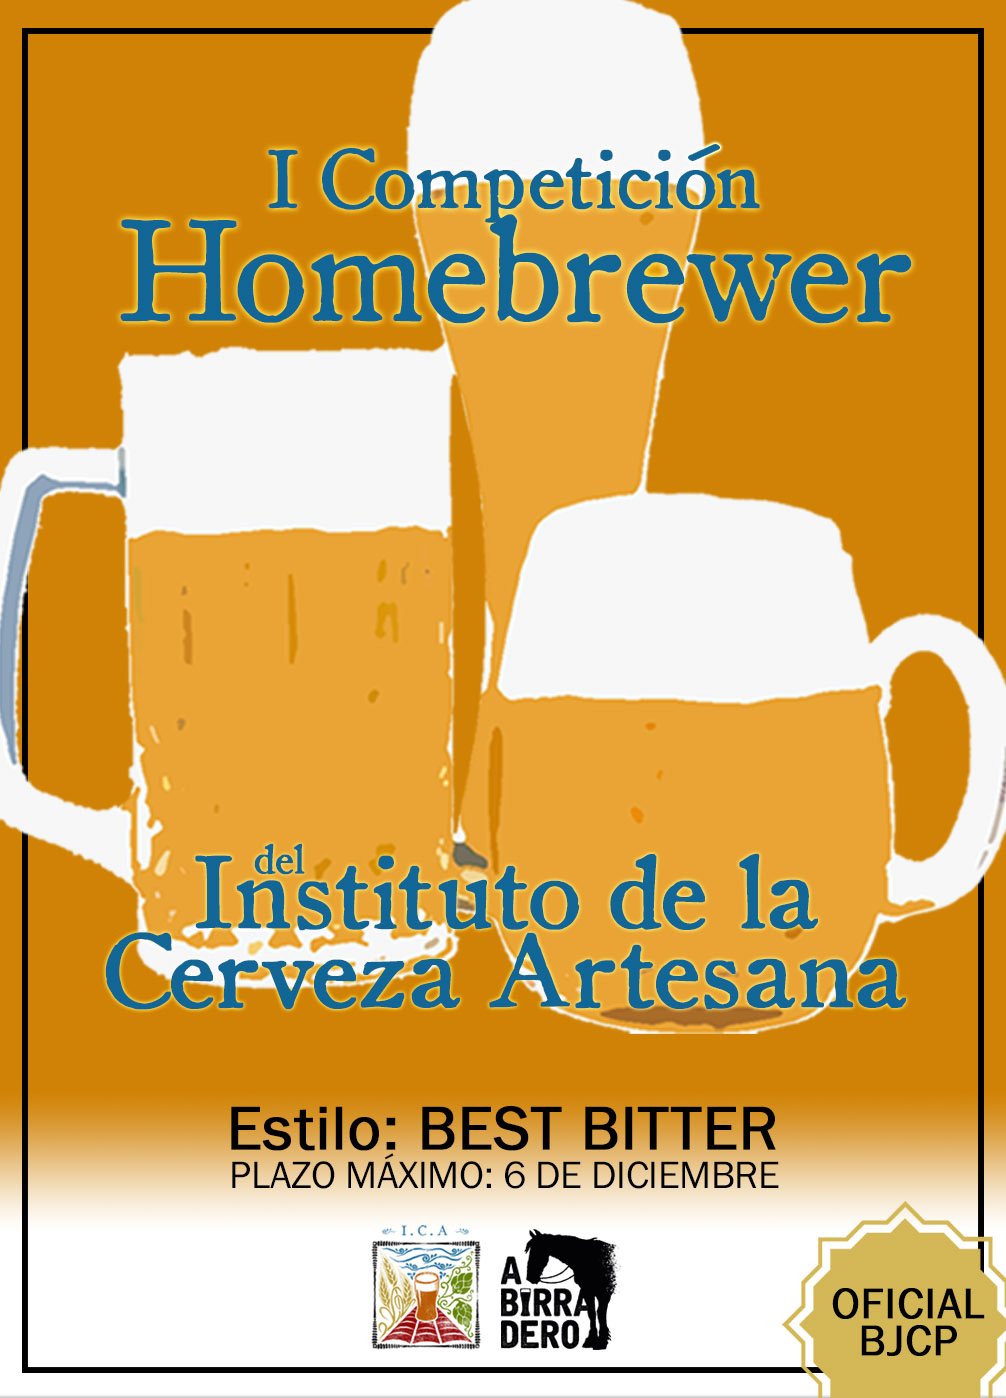 I Concurso Homebrewer